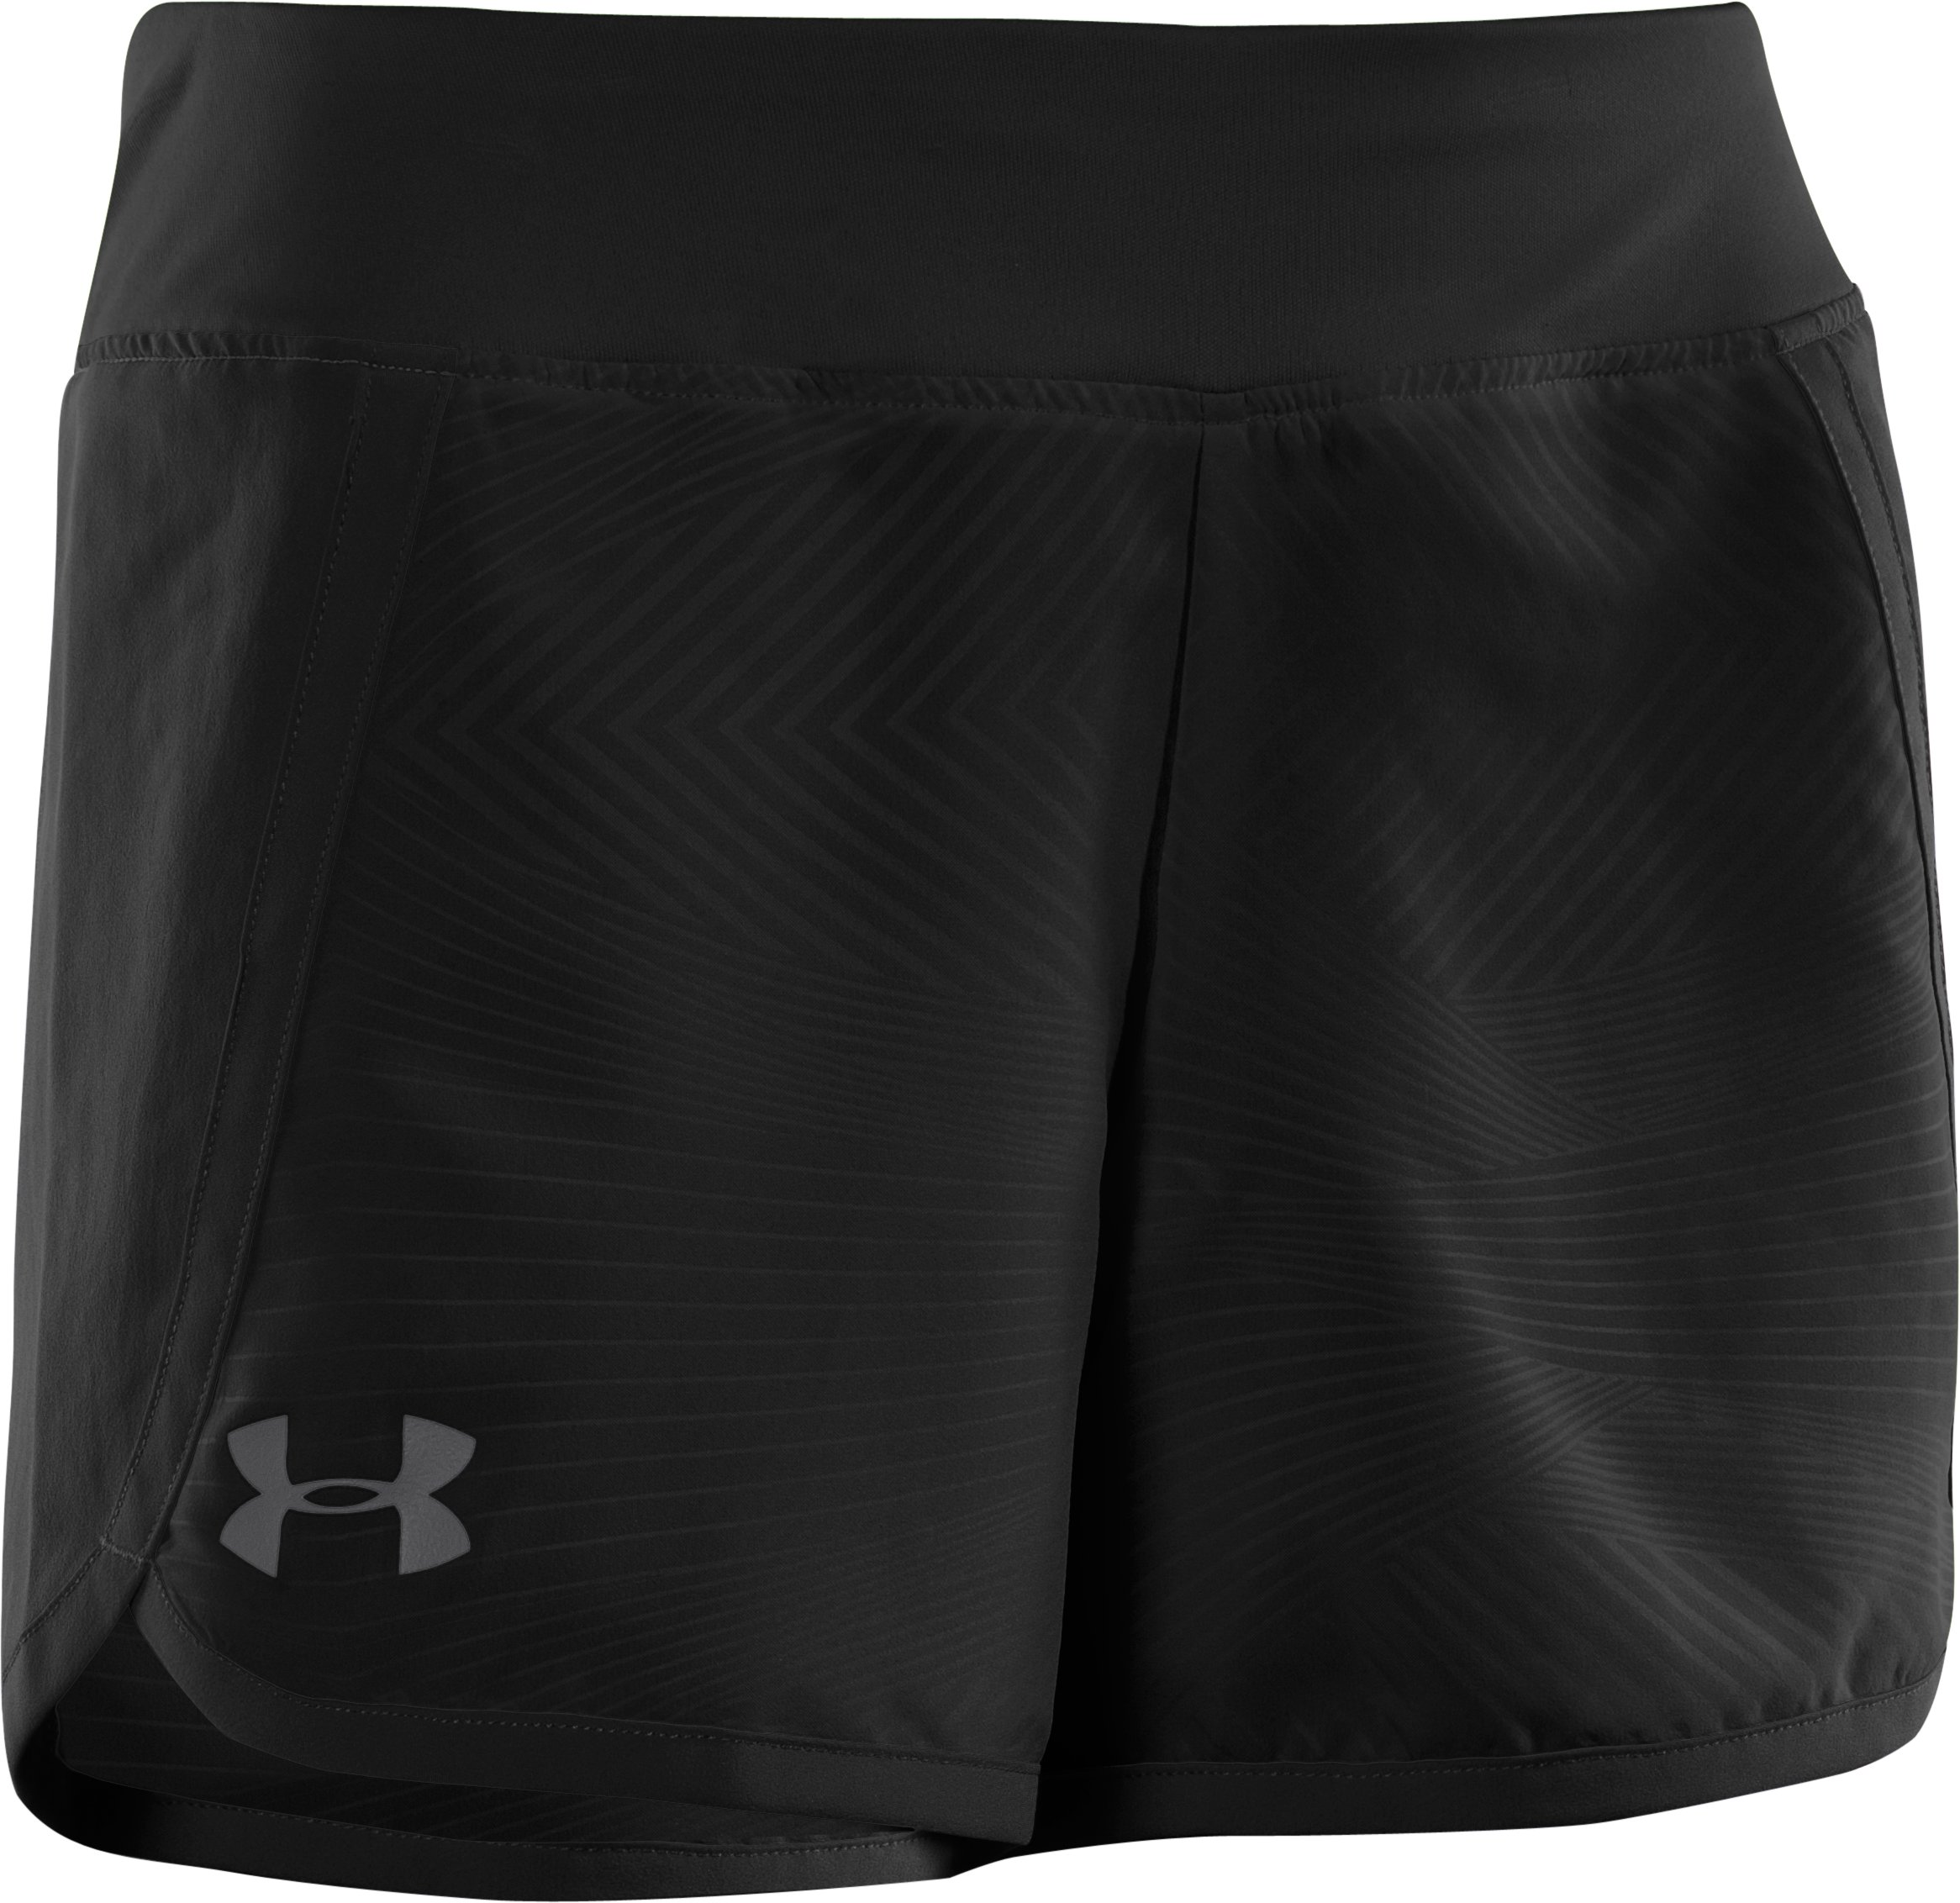 "Girls' UA Ripping 3"" Shorts, Black , undefined"